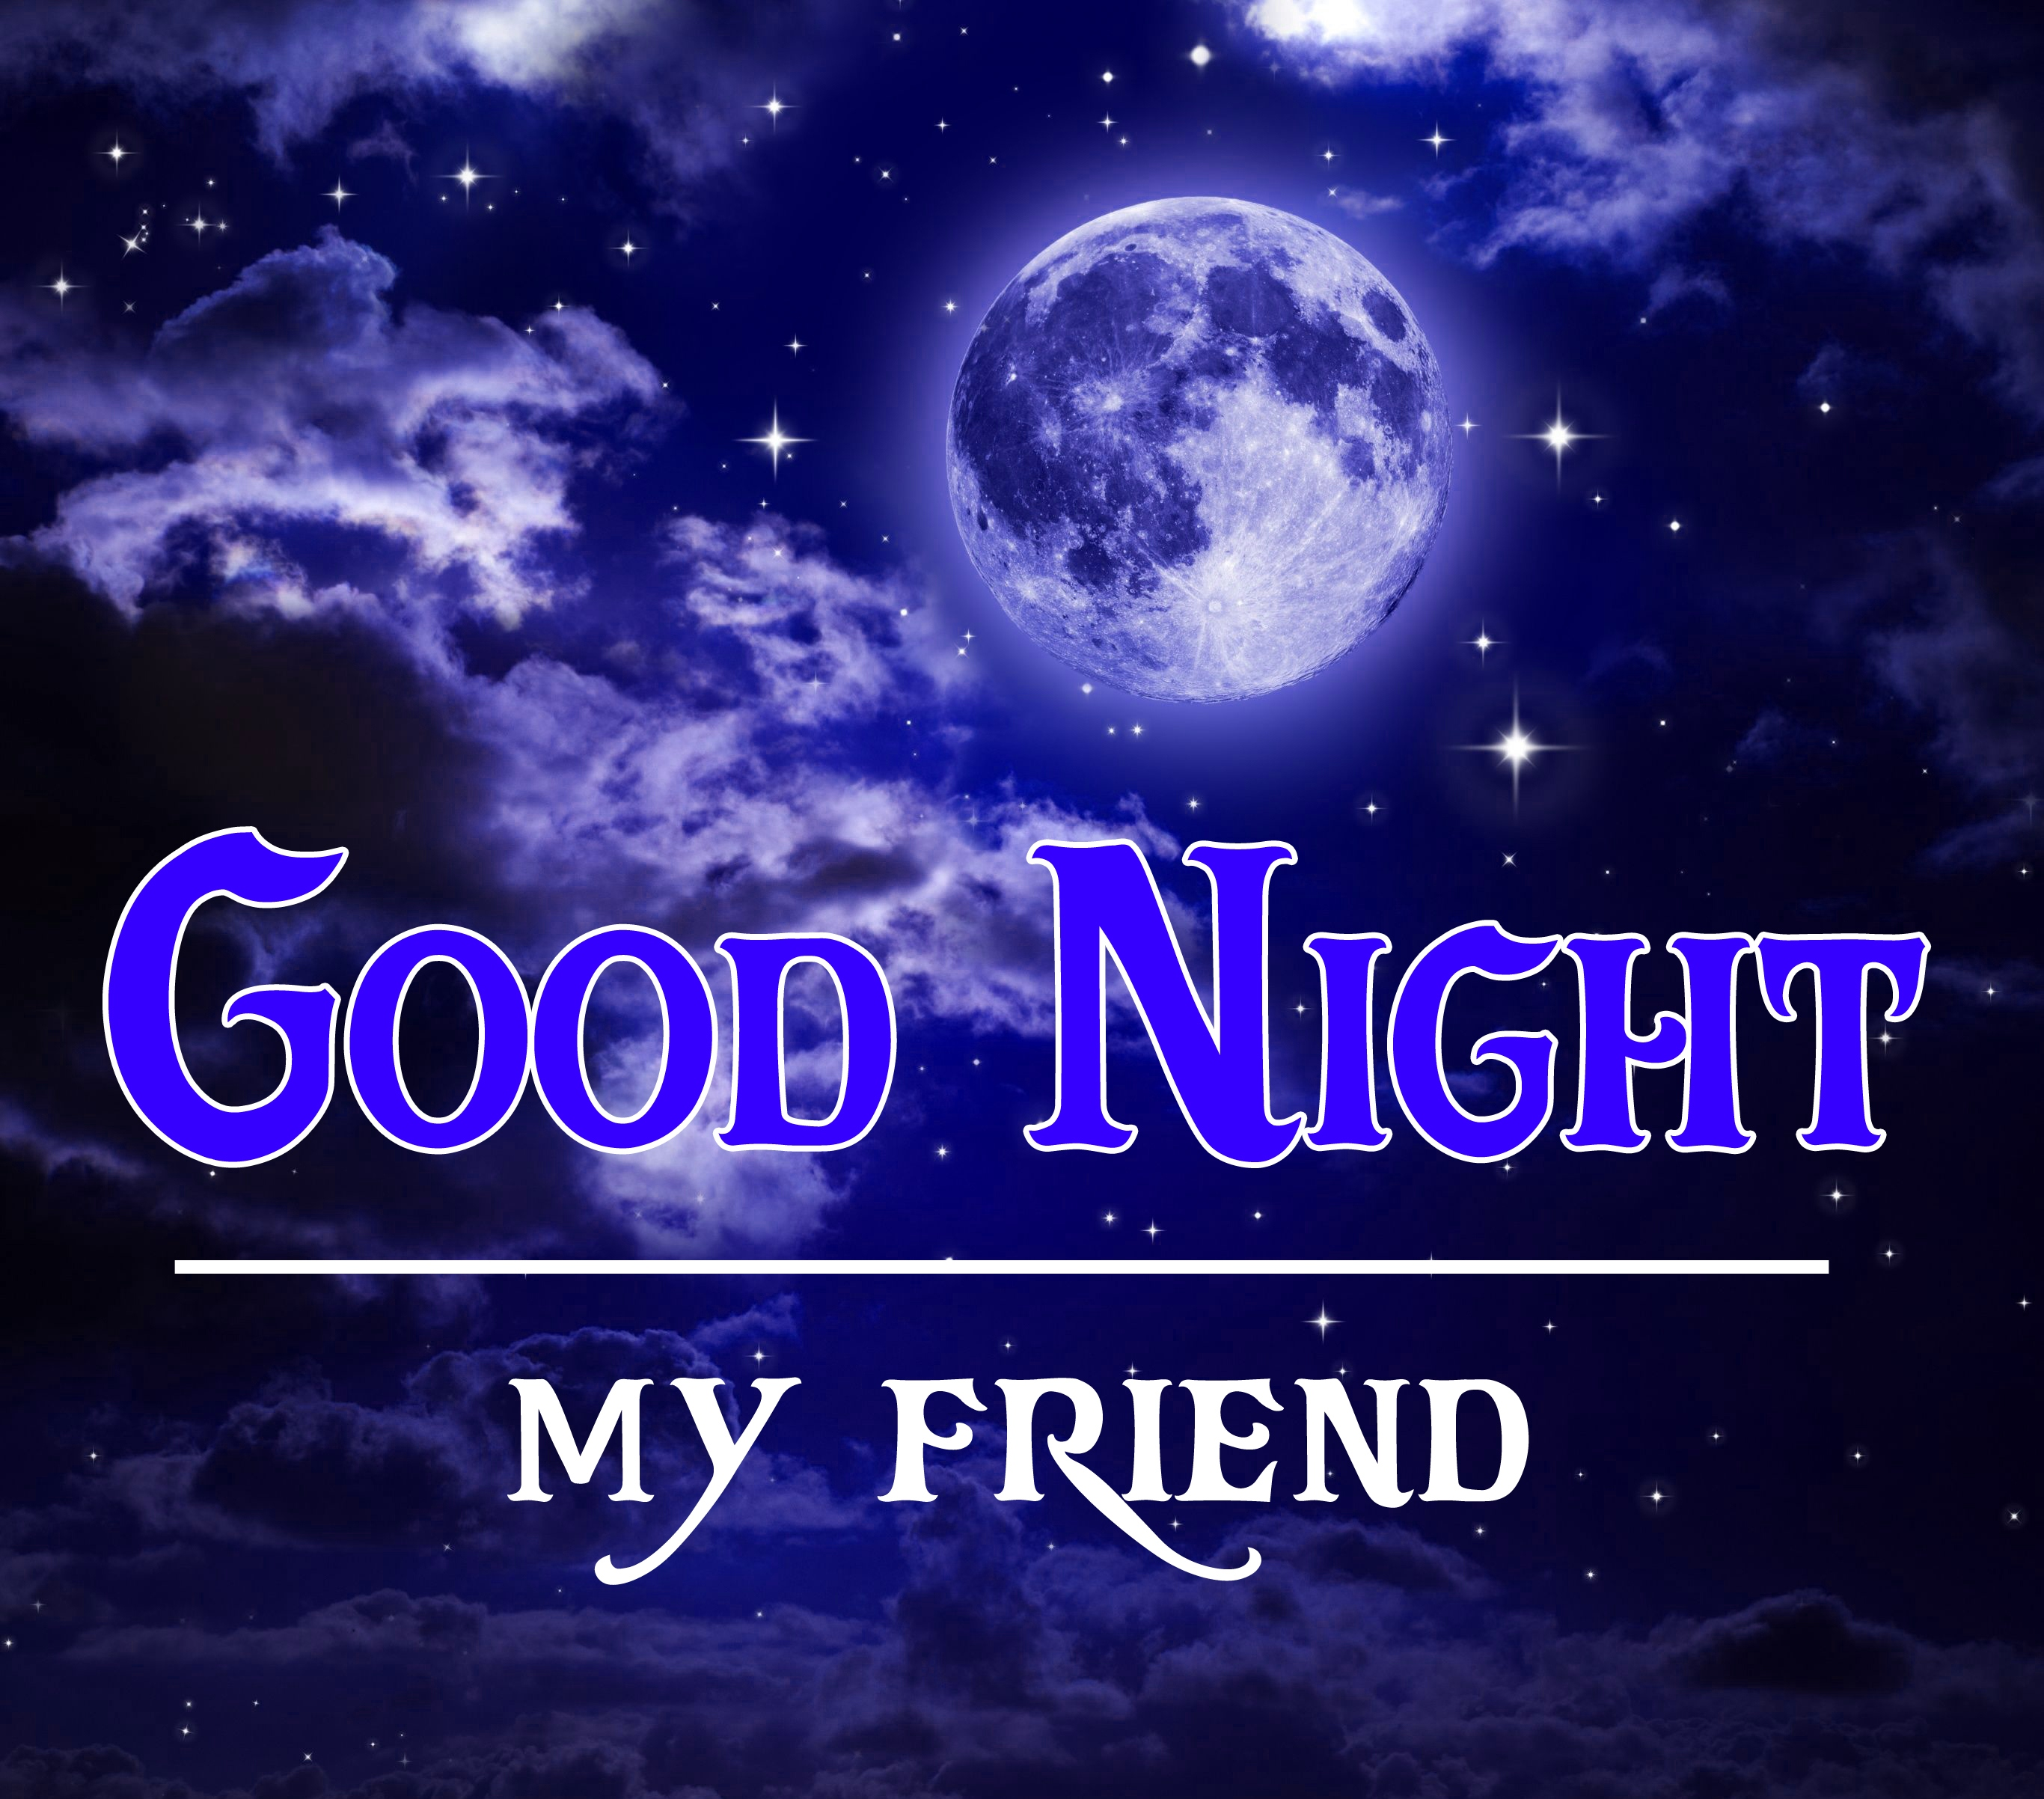 Good night wallpaper hd 47 1